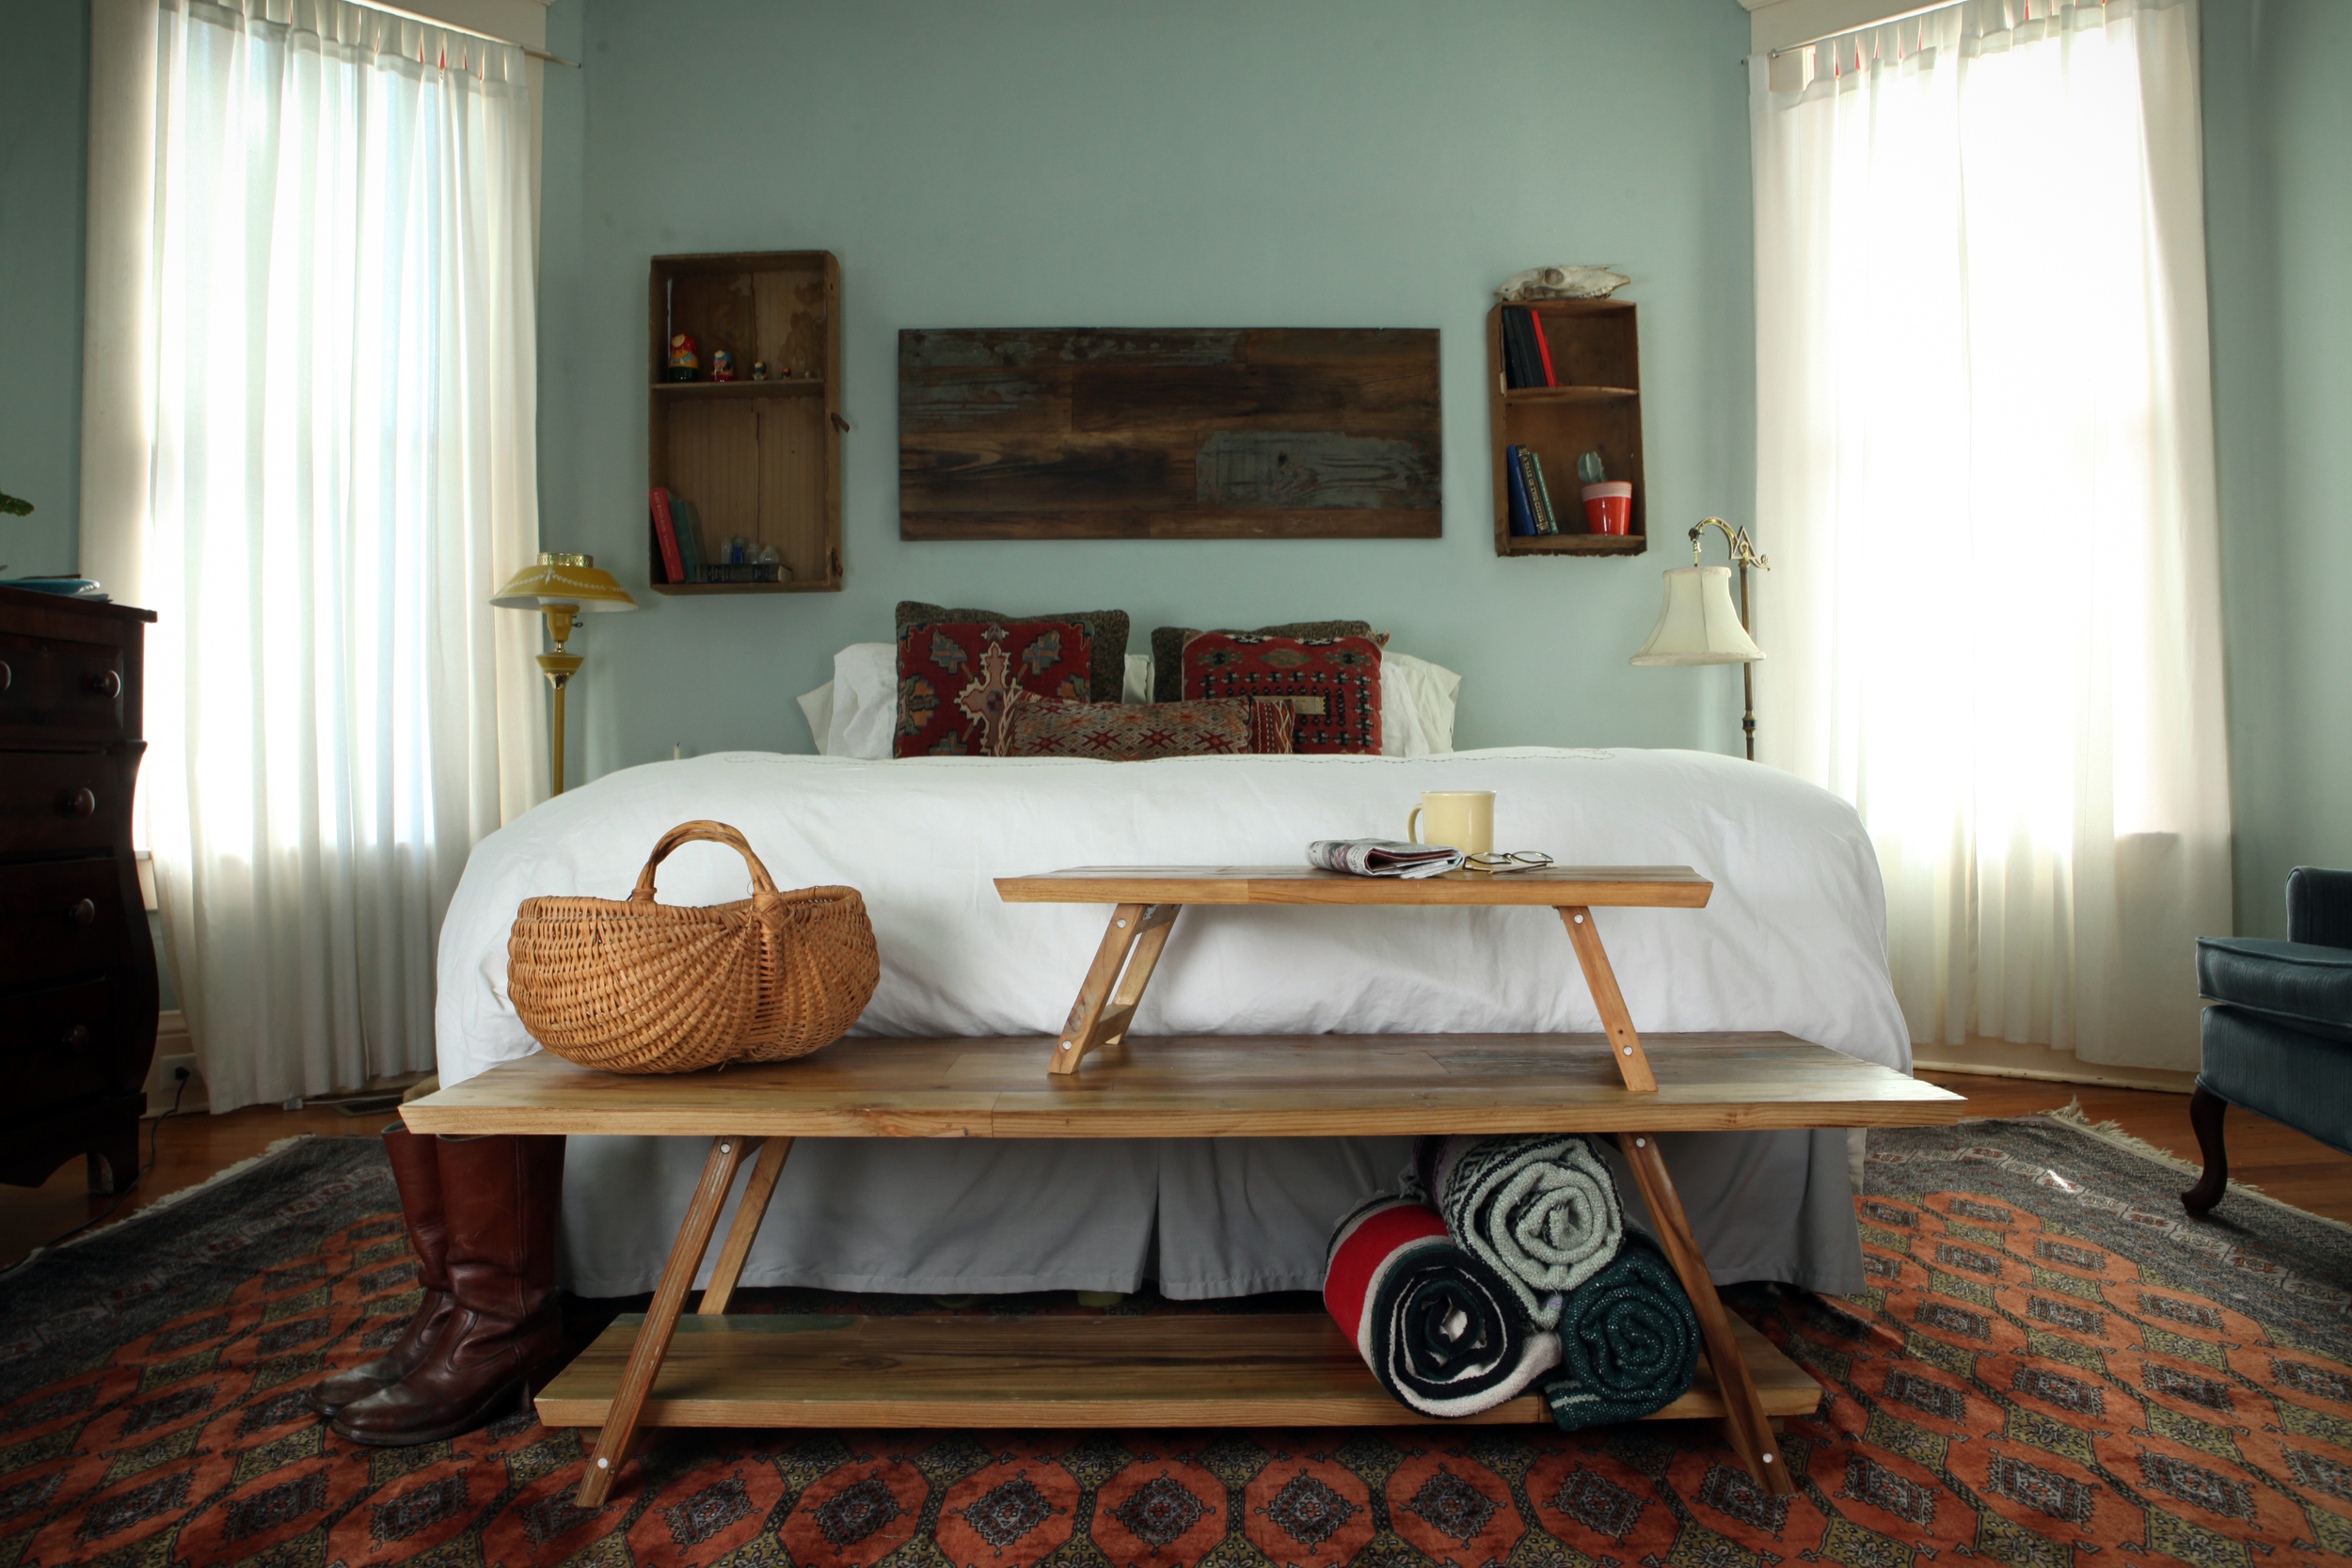 Our bedroom picture was also taken on our Reclaimed Helena photo staging day. You can see the RH Coffee Table used as a Bed End Table, the Breakfast in Bed Table and our Wood Art Piece on the wall. We have our soon to be baby boy's crib in our bedroom for now.